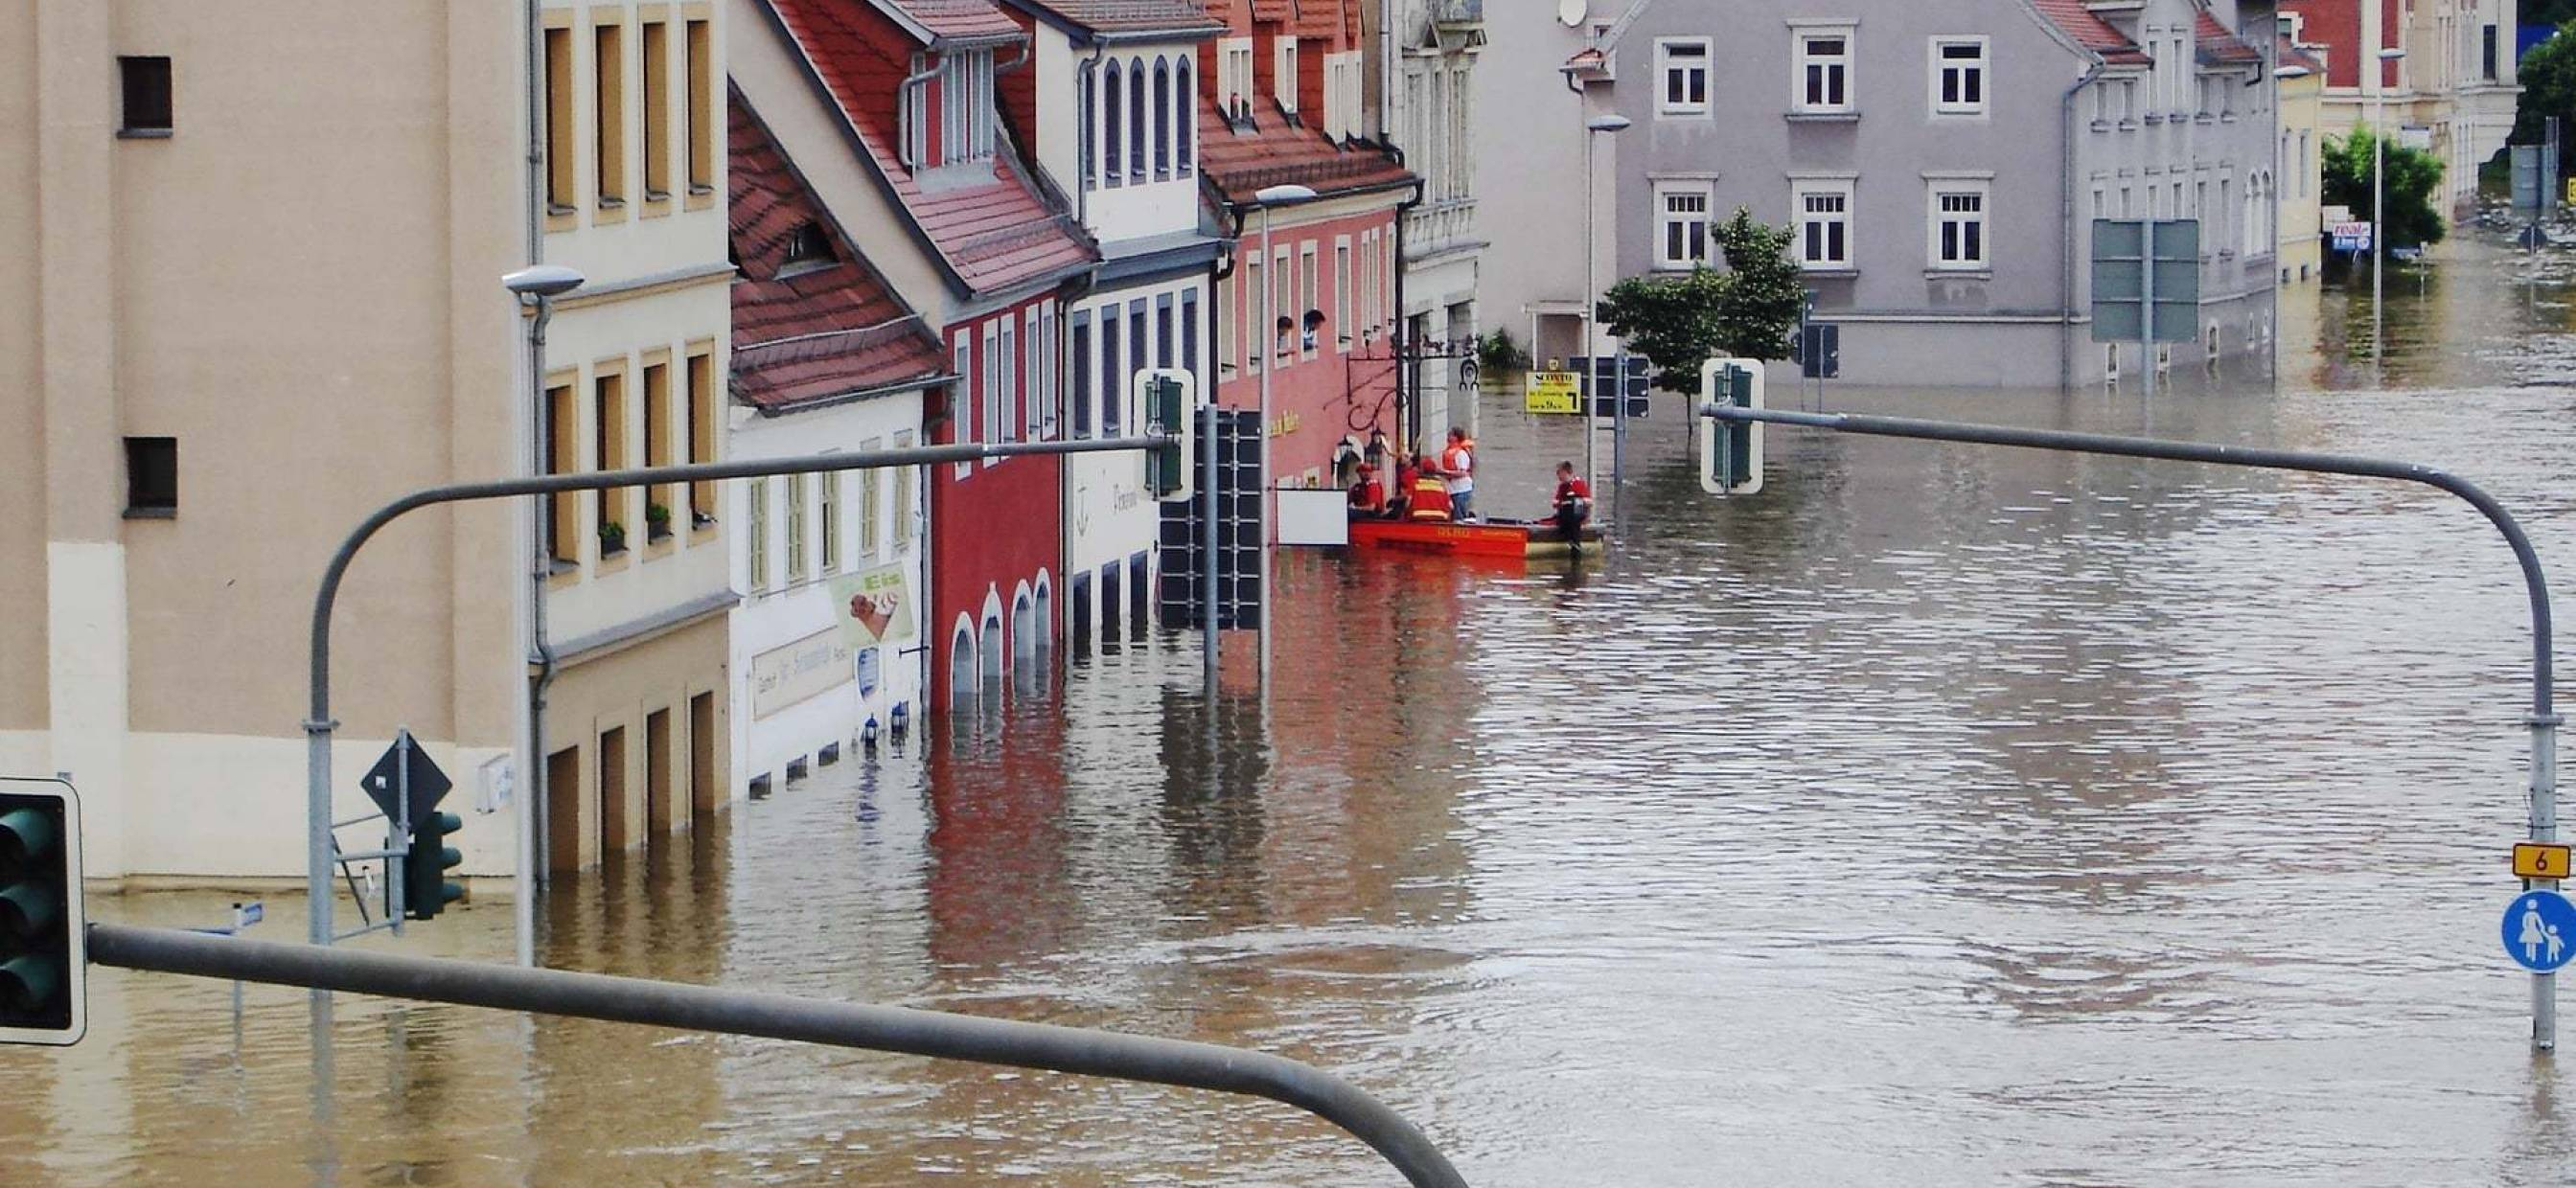 The Effect of Flood Zones on Property Values